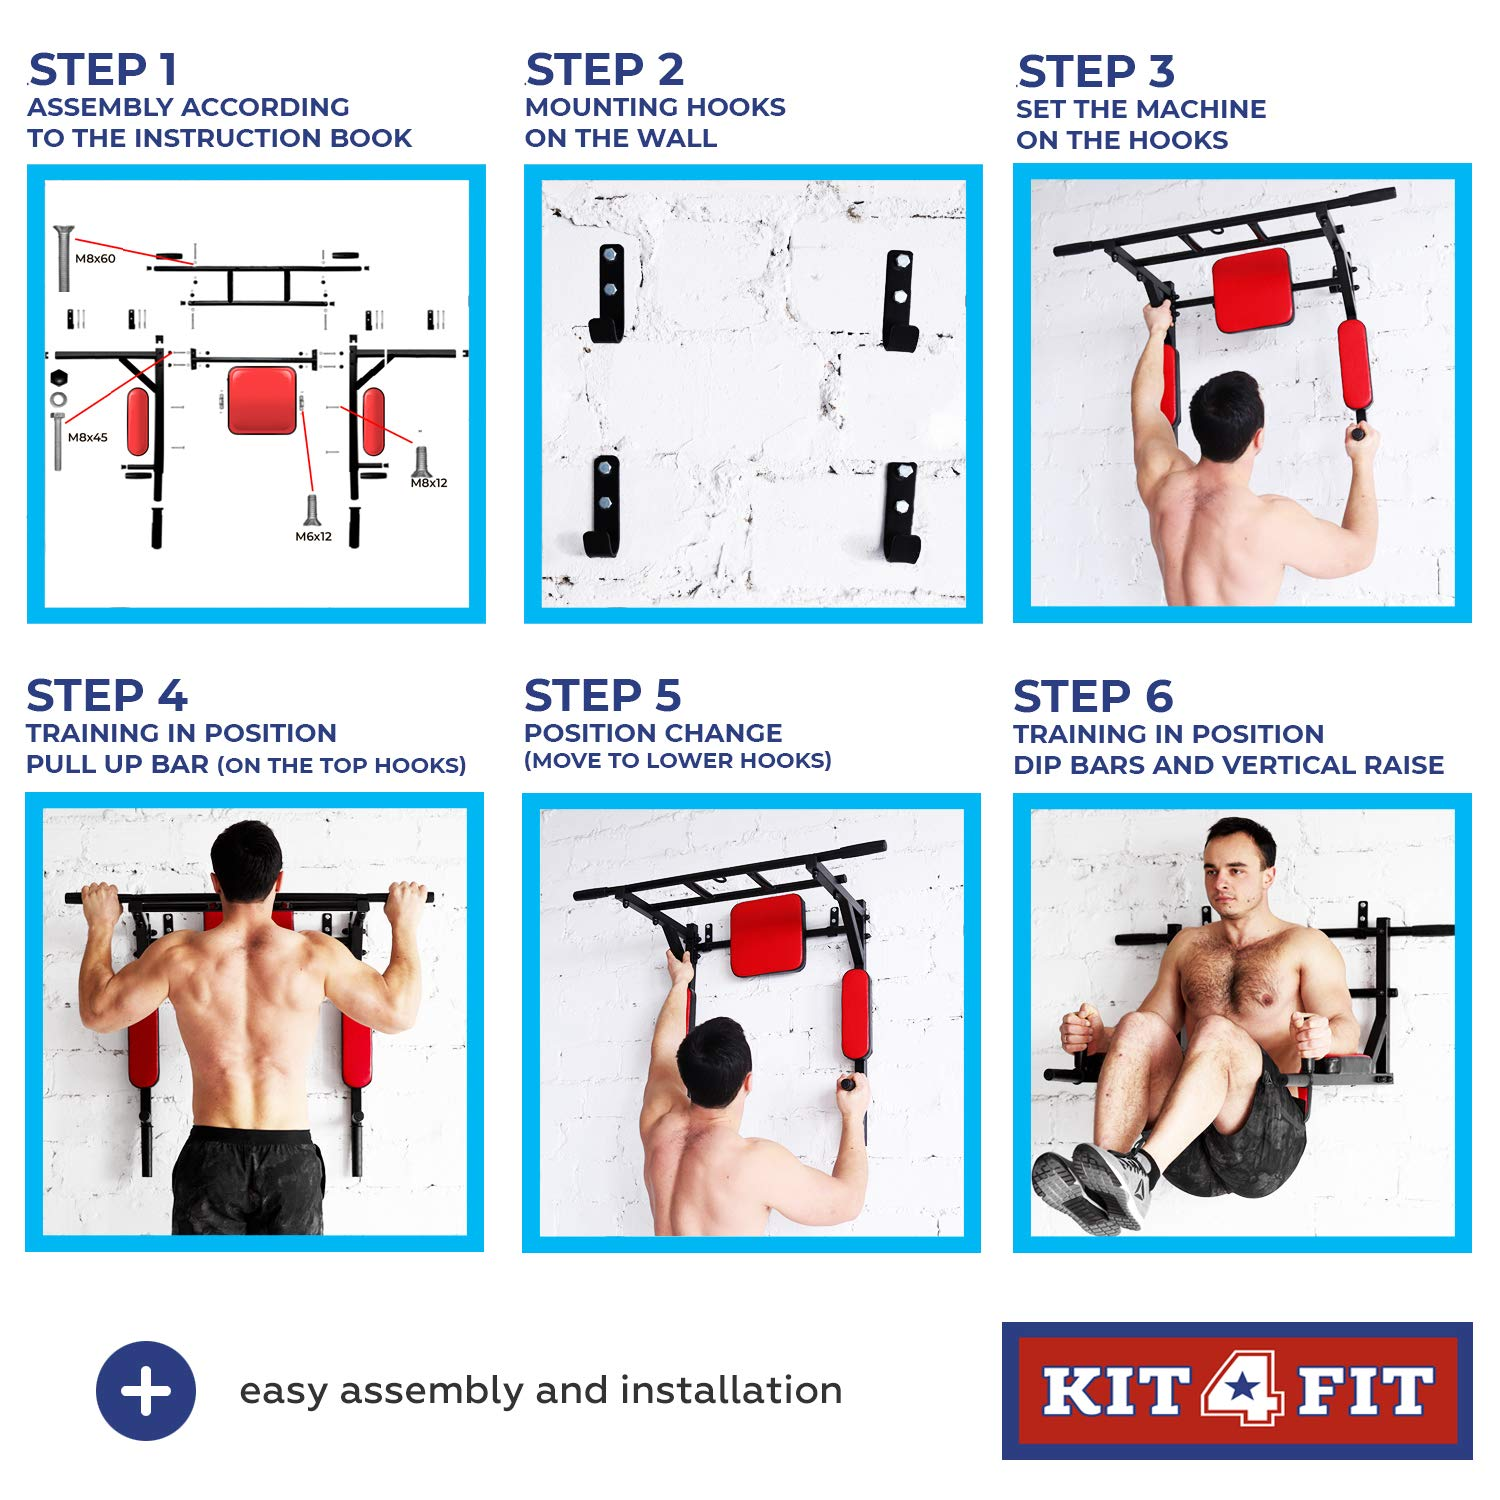 Wall Mounted Pull Up Bar and Dip Station with Vertical Knee Raise Station Indoor Home Exercise Equipment for Men Woman and Kids Great for Workout and Fitness (Red) by Kit4Fit (Image #2)